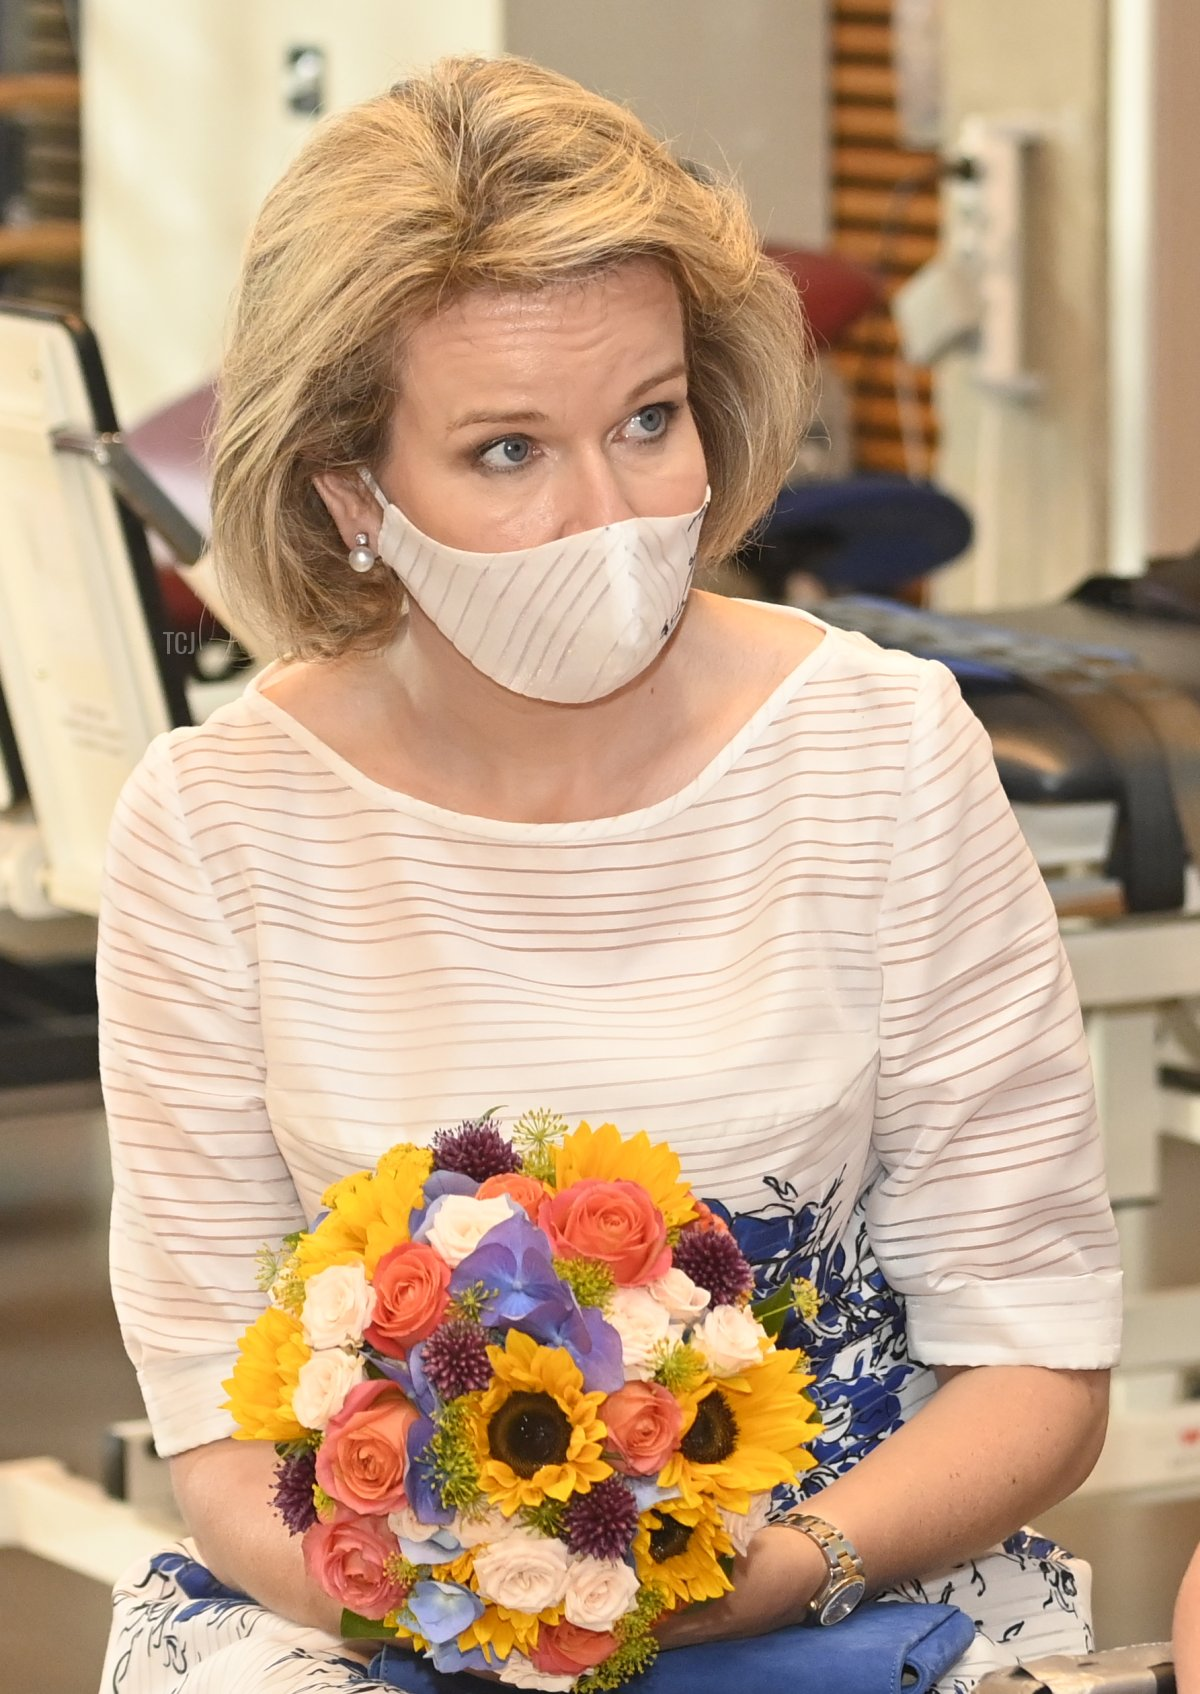 Queen Mathilde of Belgium pictured at a visit of the royal family at the occasion of the Belgian national day, at the national center for multiple sclerosis in Melsbroek, Wednesday 21 July 2021